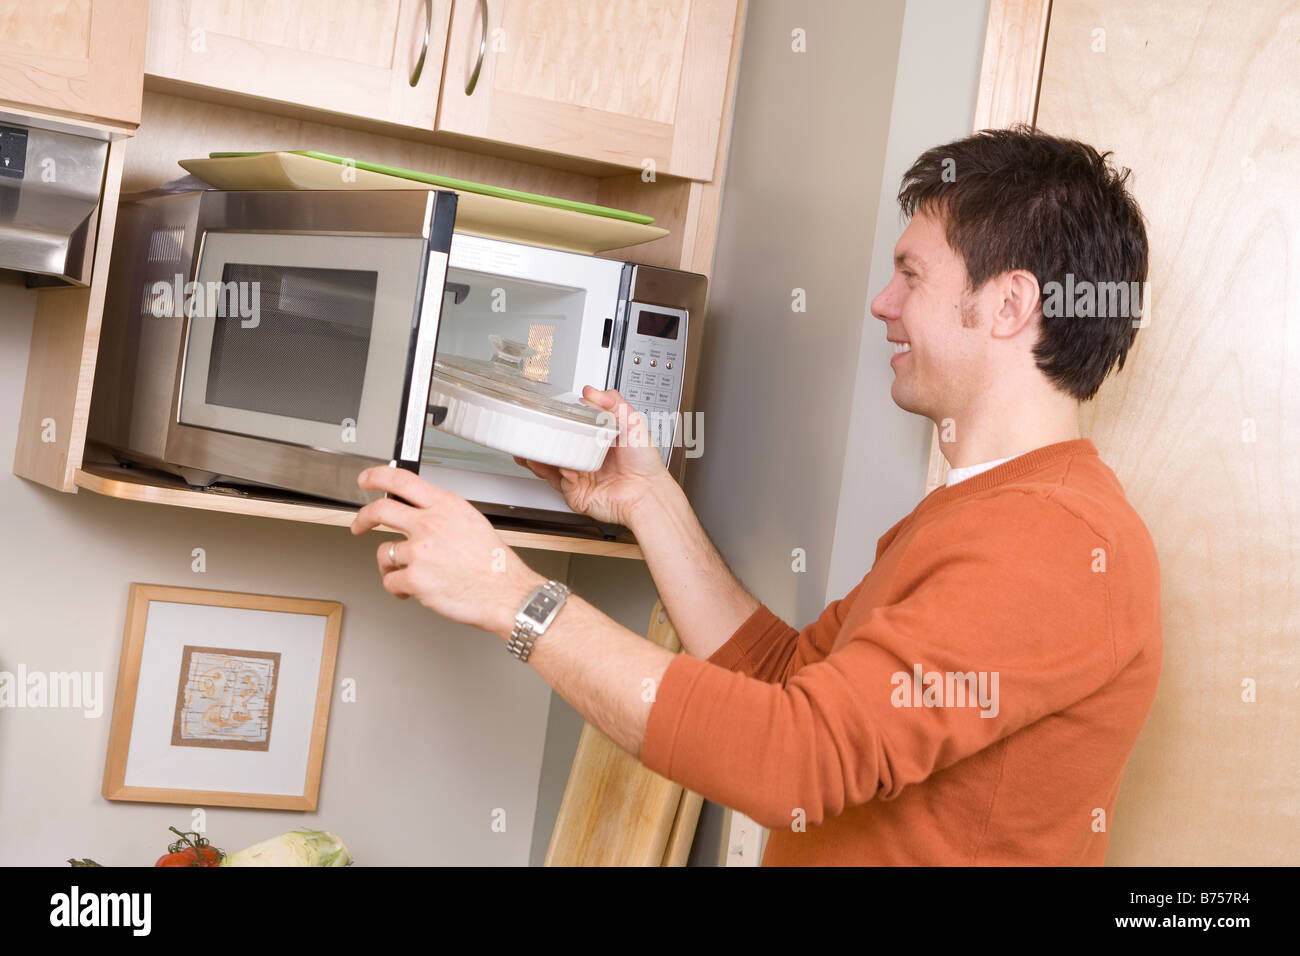 Man places glass dish in energy efficient microwave oven, Winnipeg, Canada - Stock Image